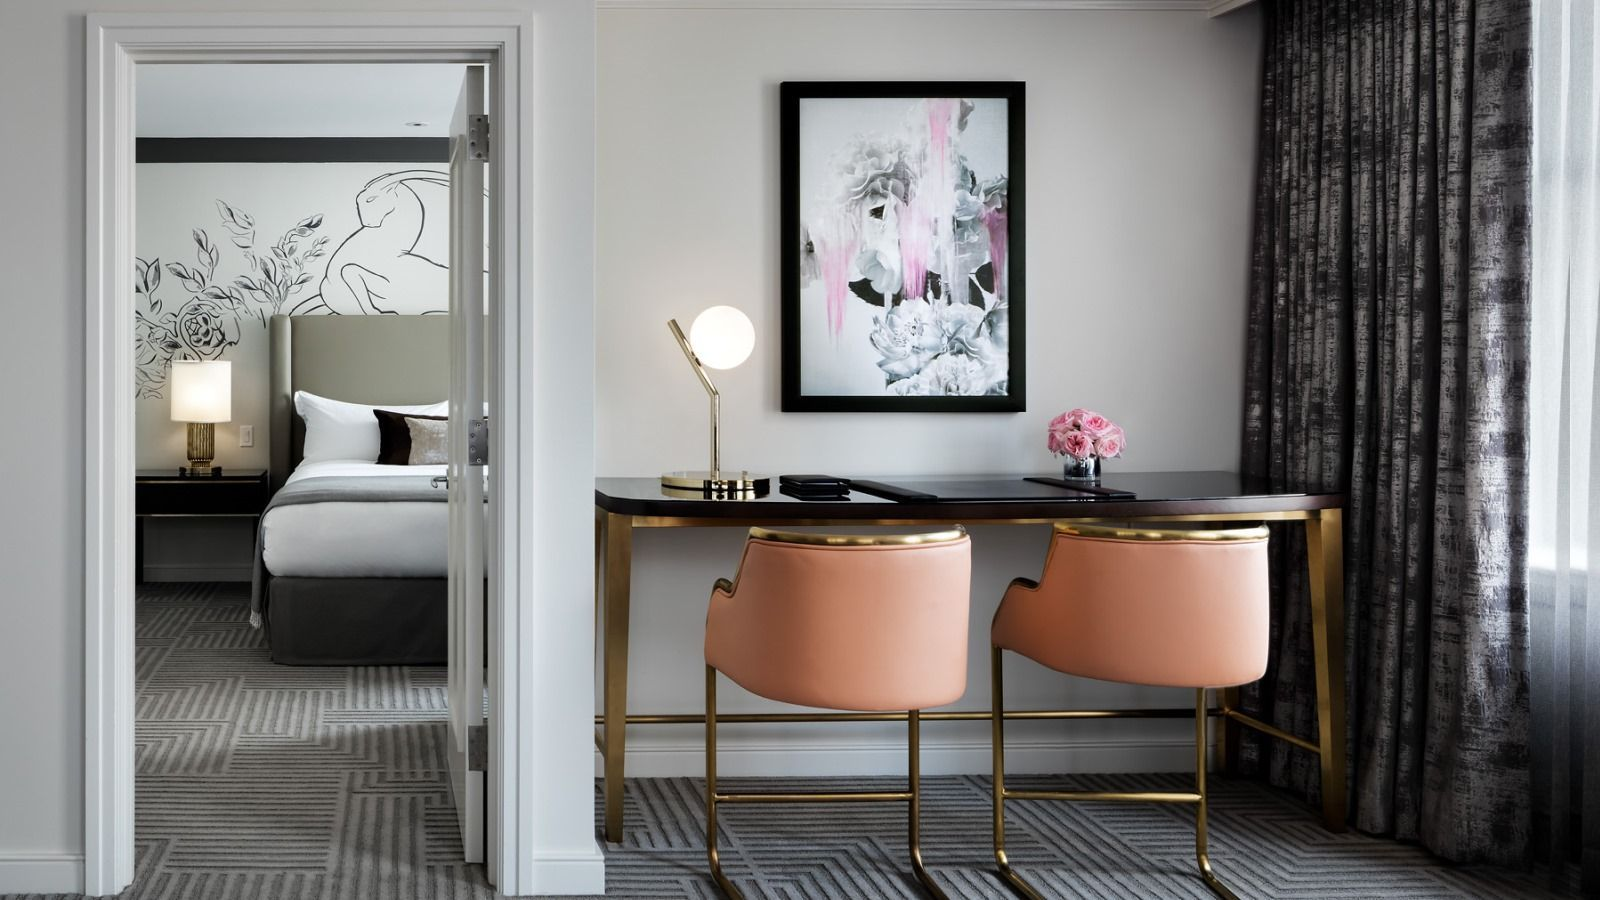 discover chicago hotel luxury when you visit the gwen chicago view rh pinterest com